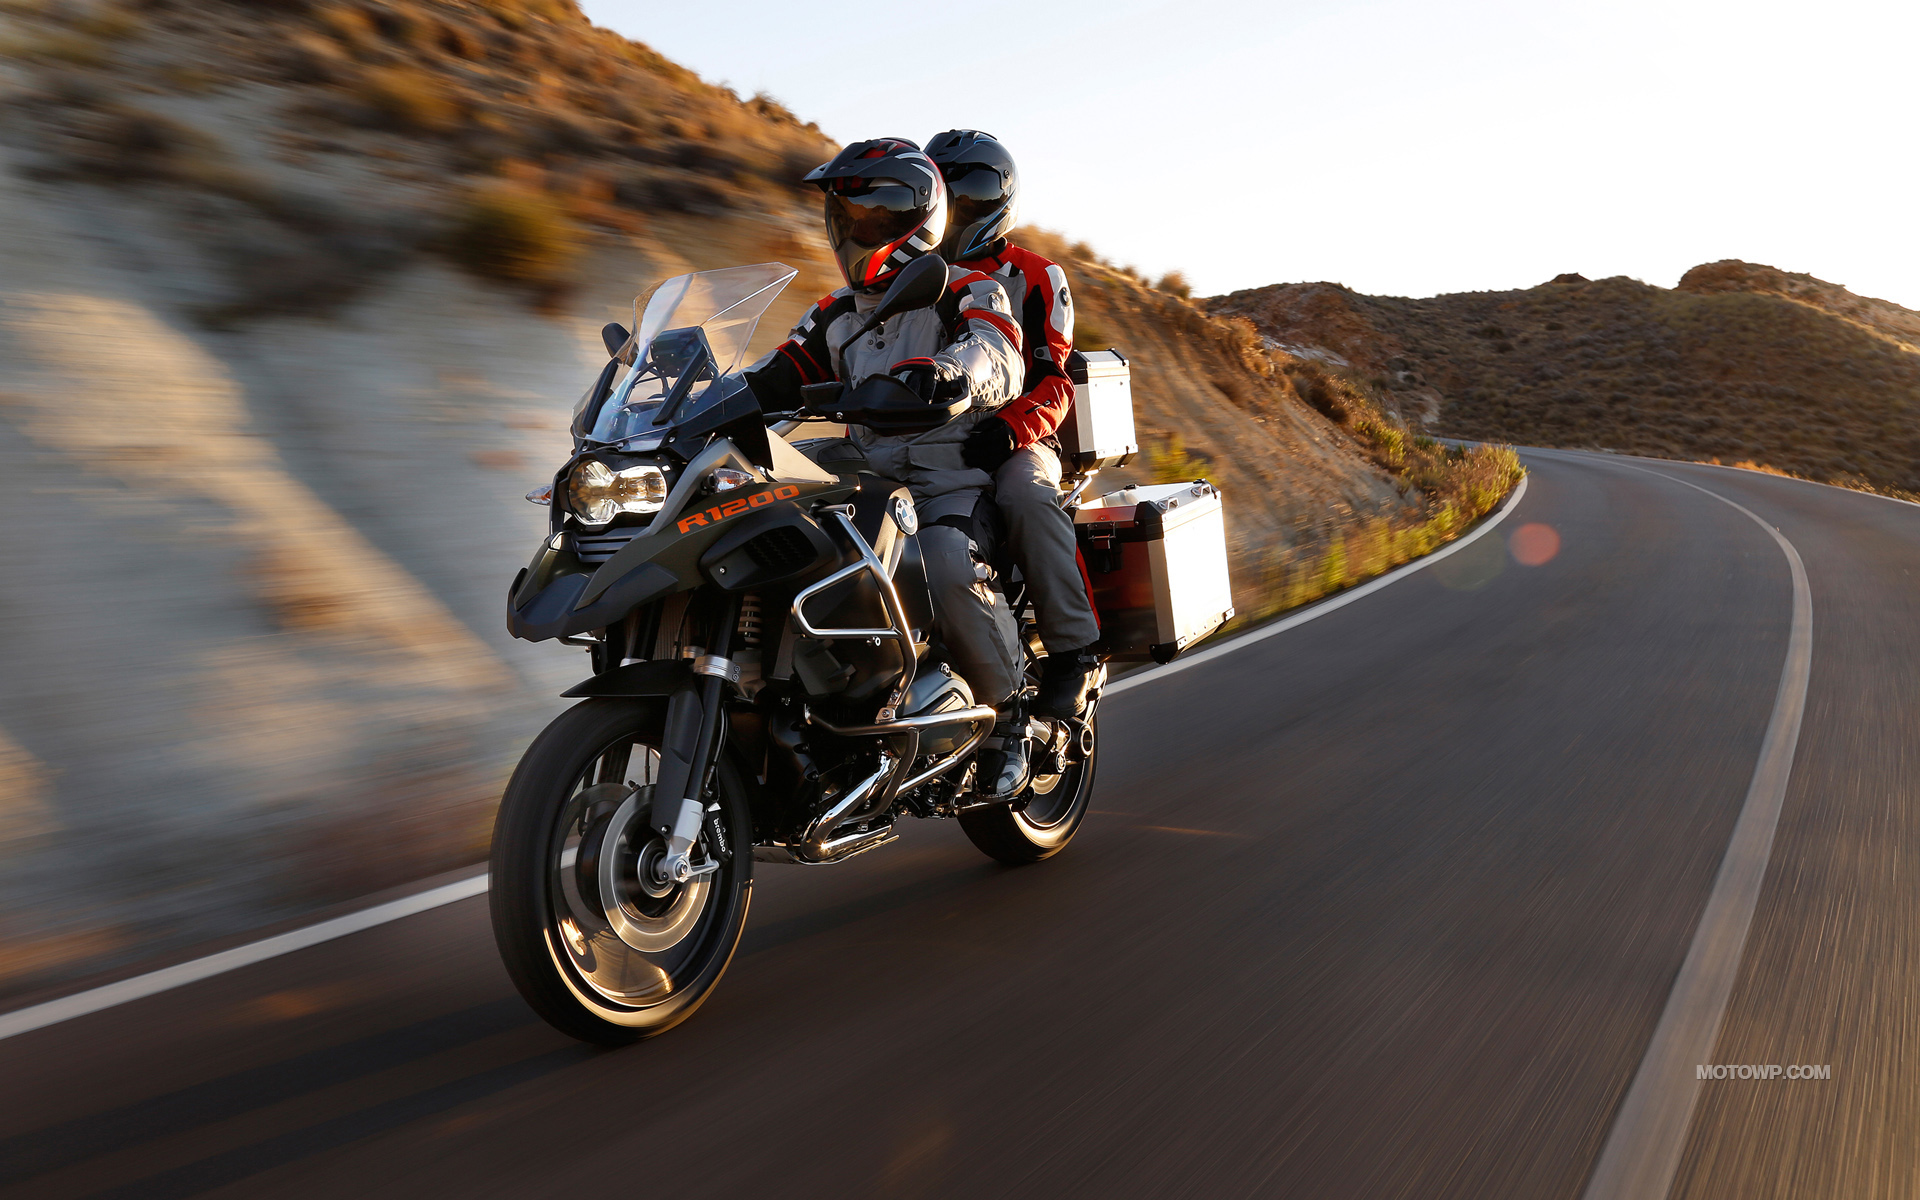 BMW-R-1200-GS-Adventure-2013-1920x1200-014